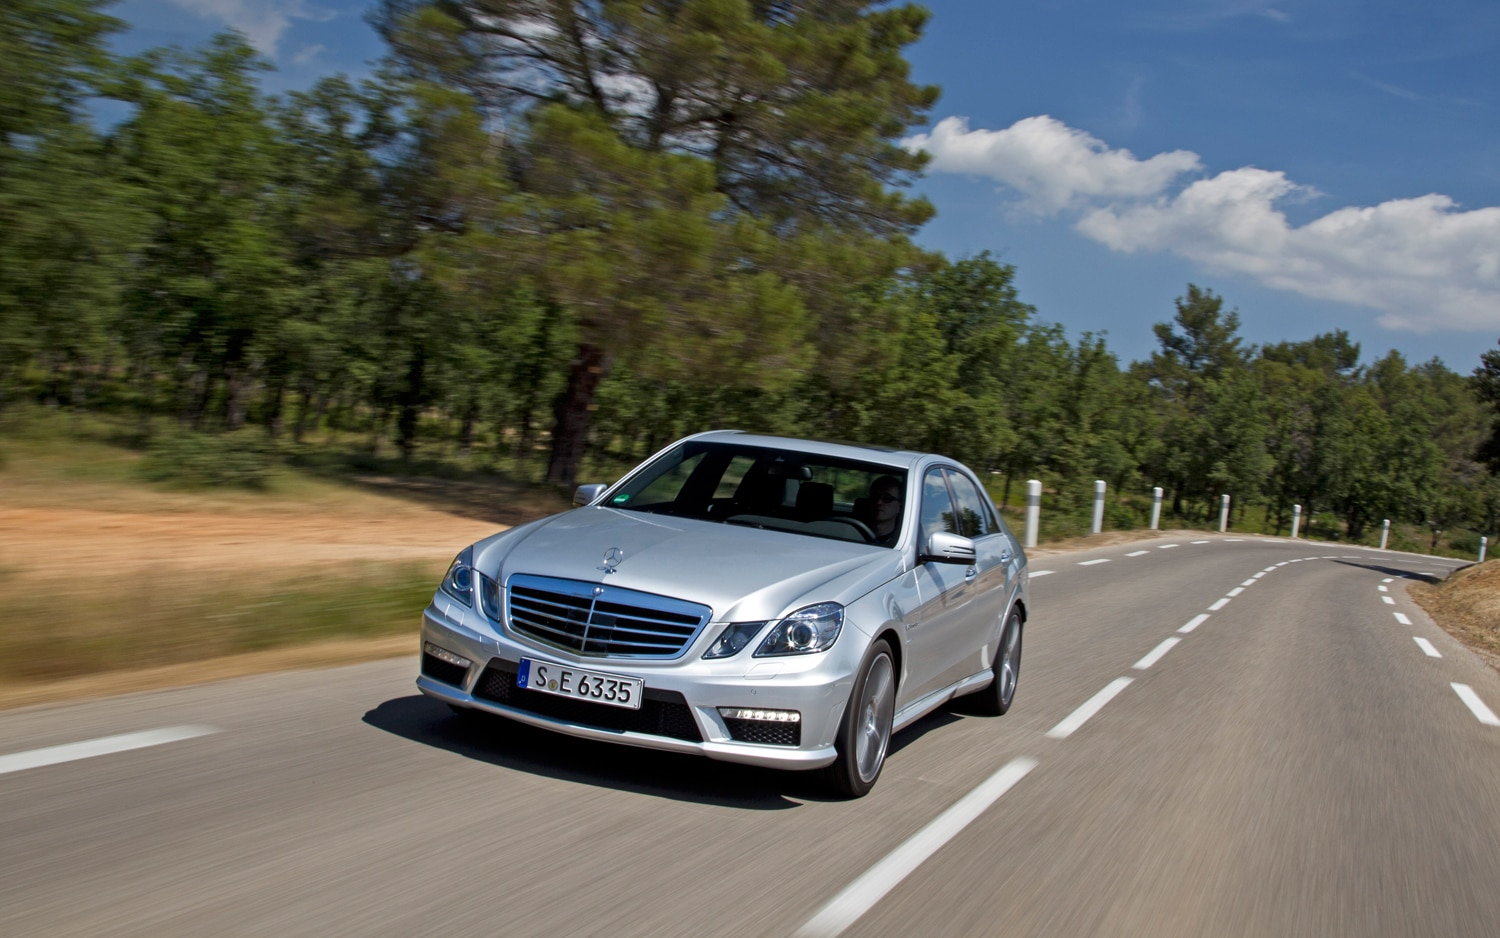 2012 Mercedes Benz E63 AMG Front Three Quarter 2